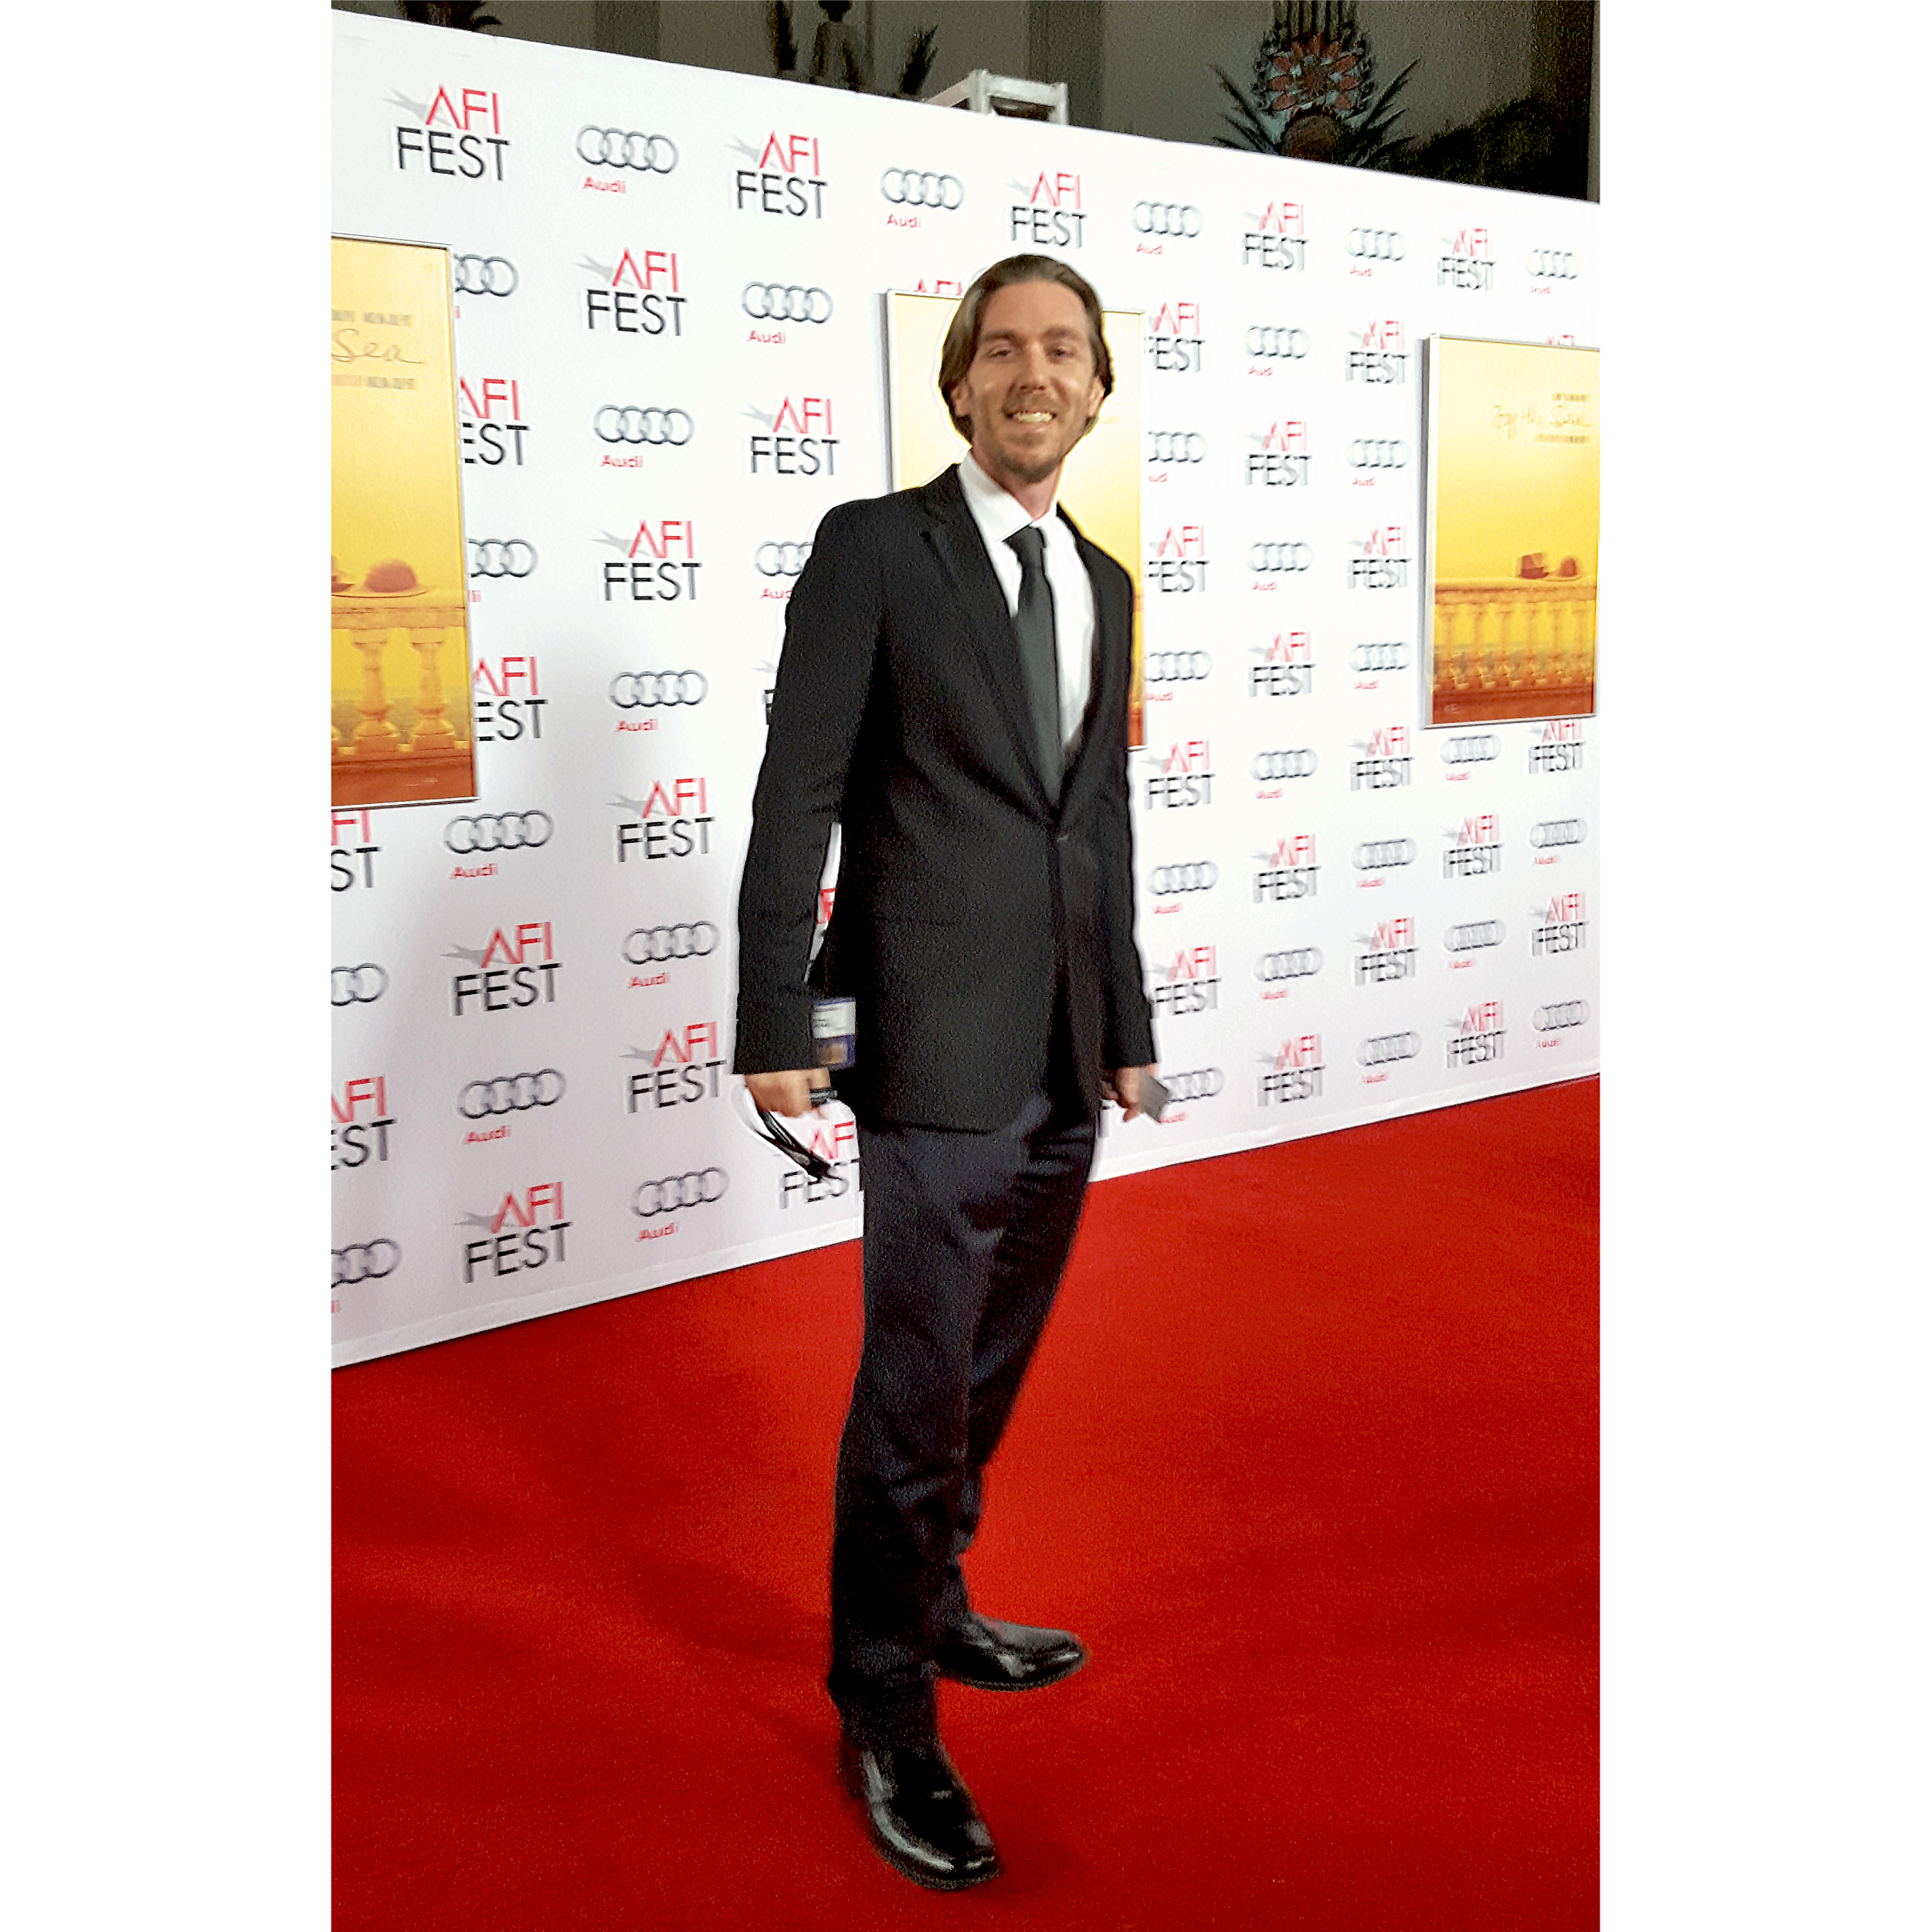 Brandon Blake at AFI FEST Opening Night Gala World Premiere at the TCL Chinese Theatre